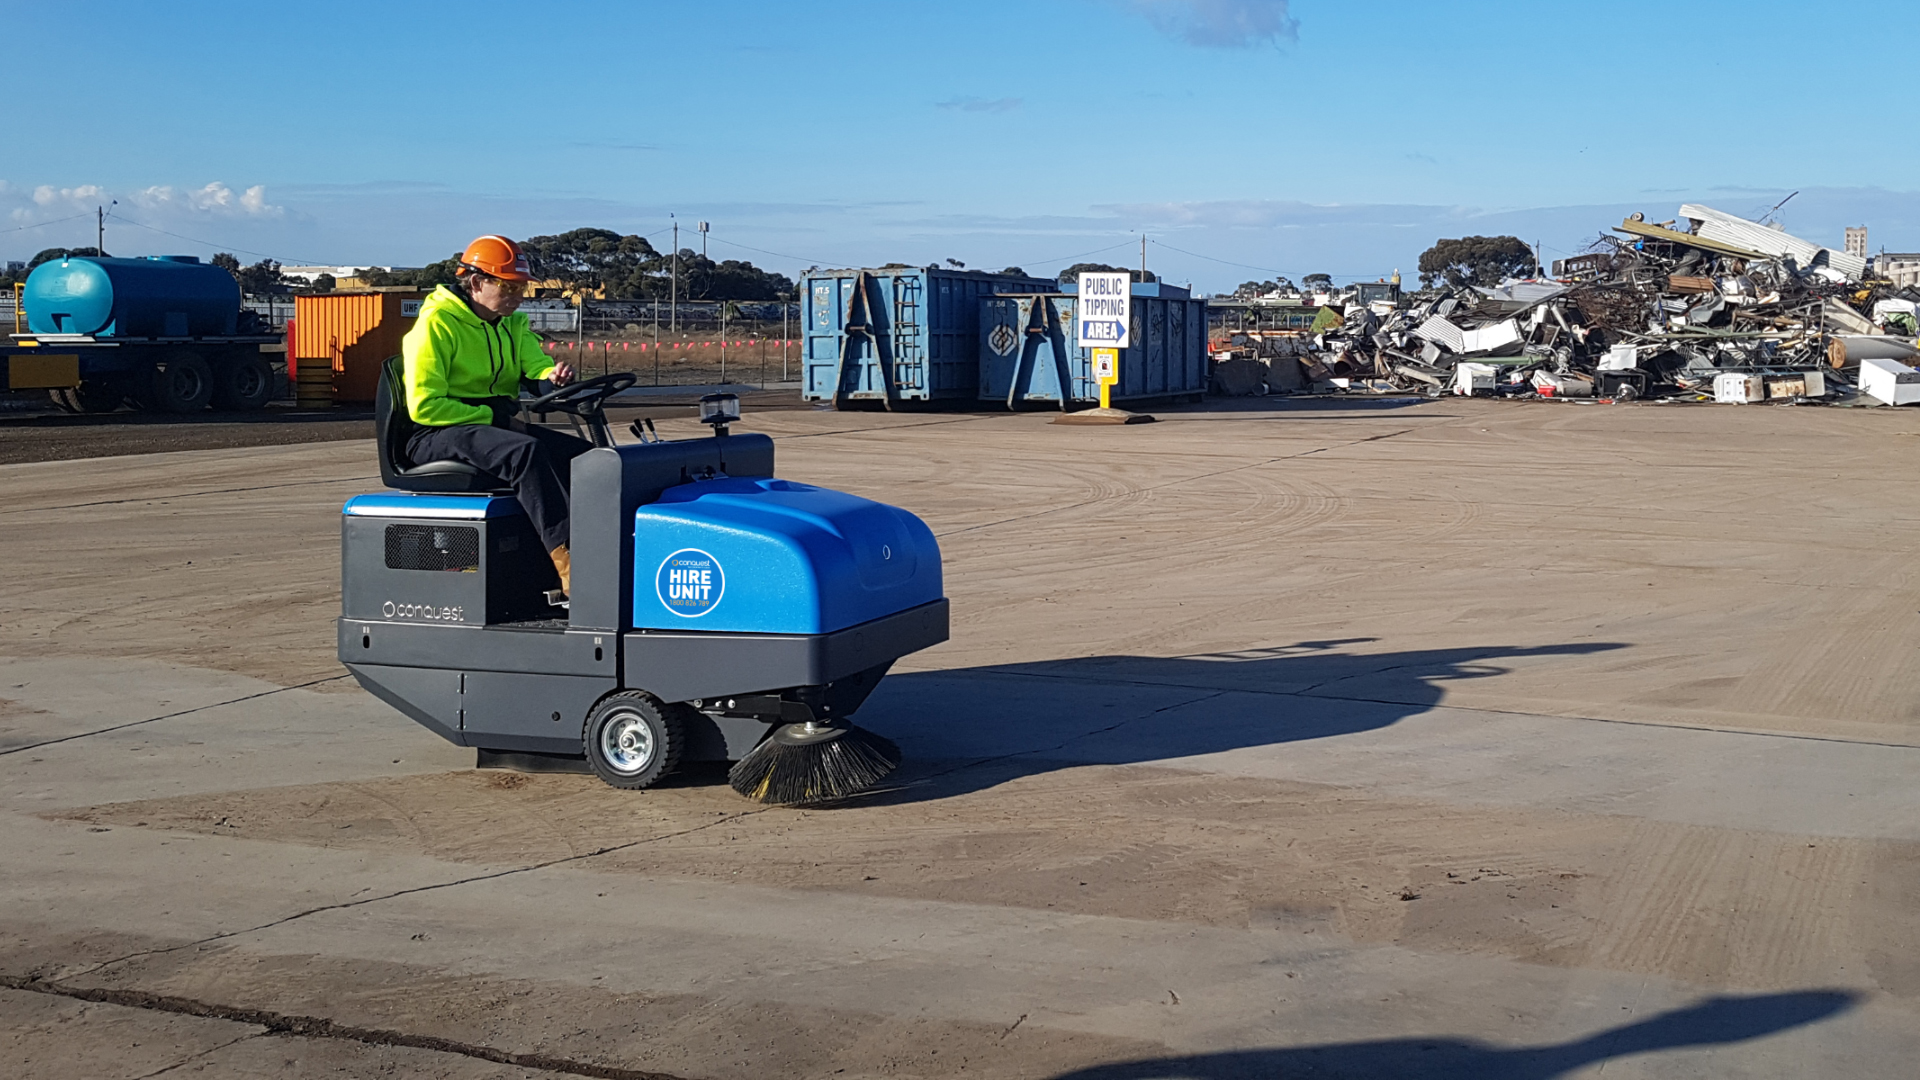 Conquest PB115 Power Sweeper available on Short-Term Hire